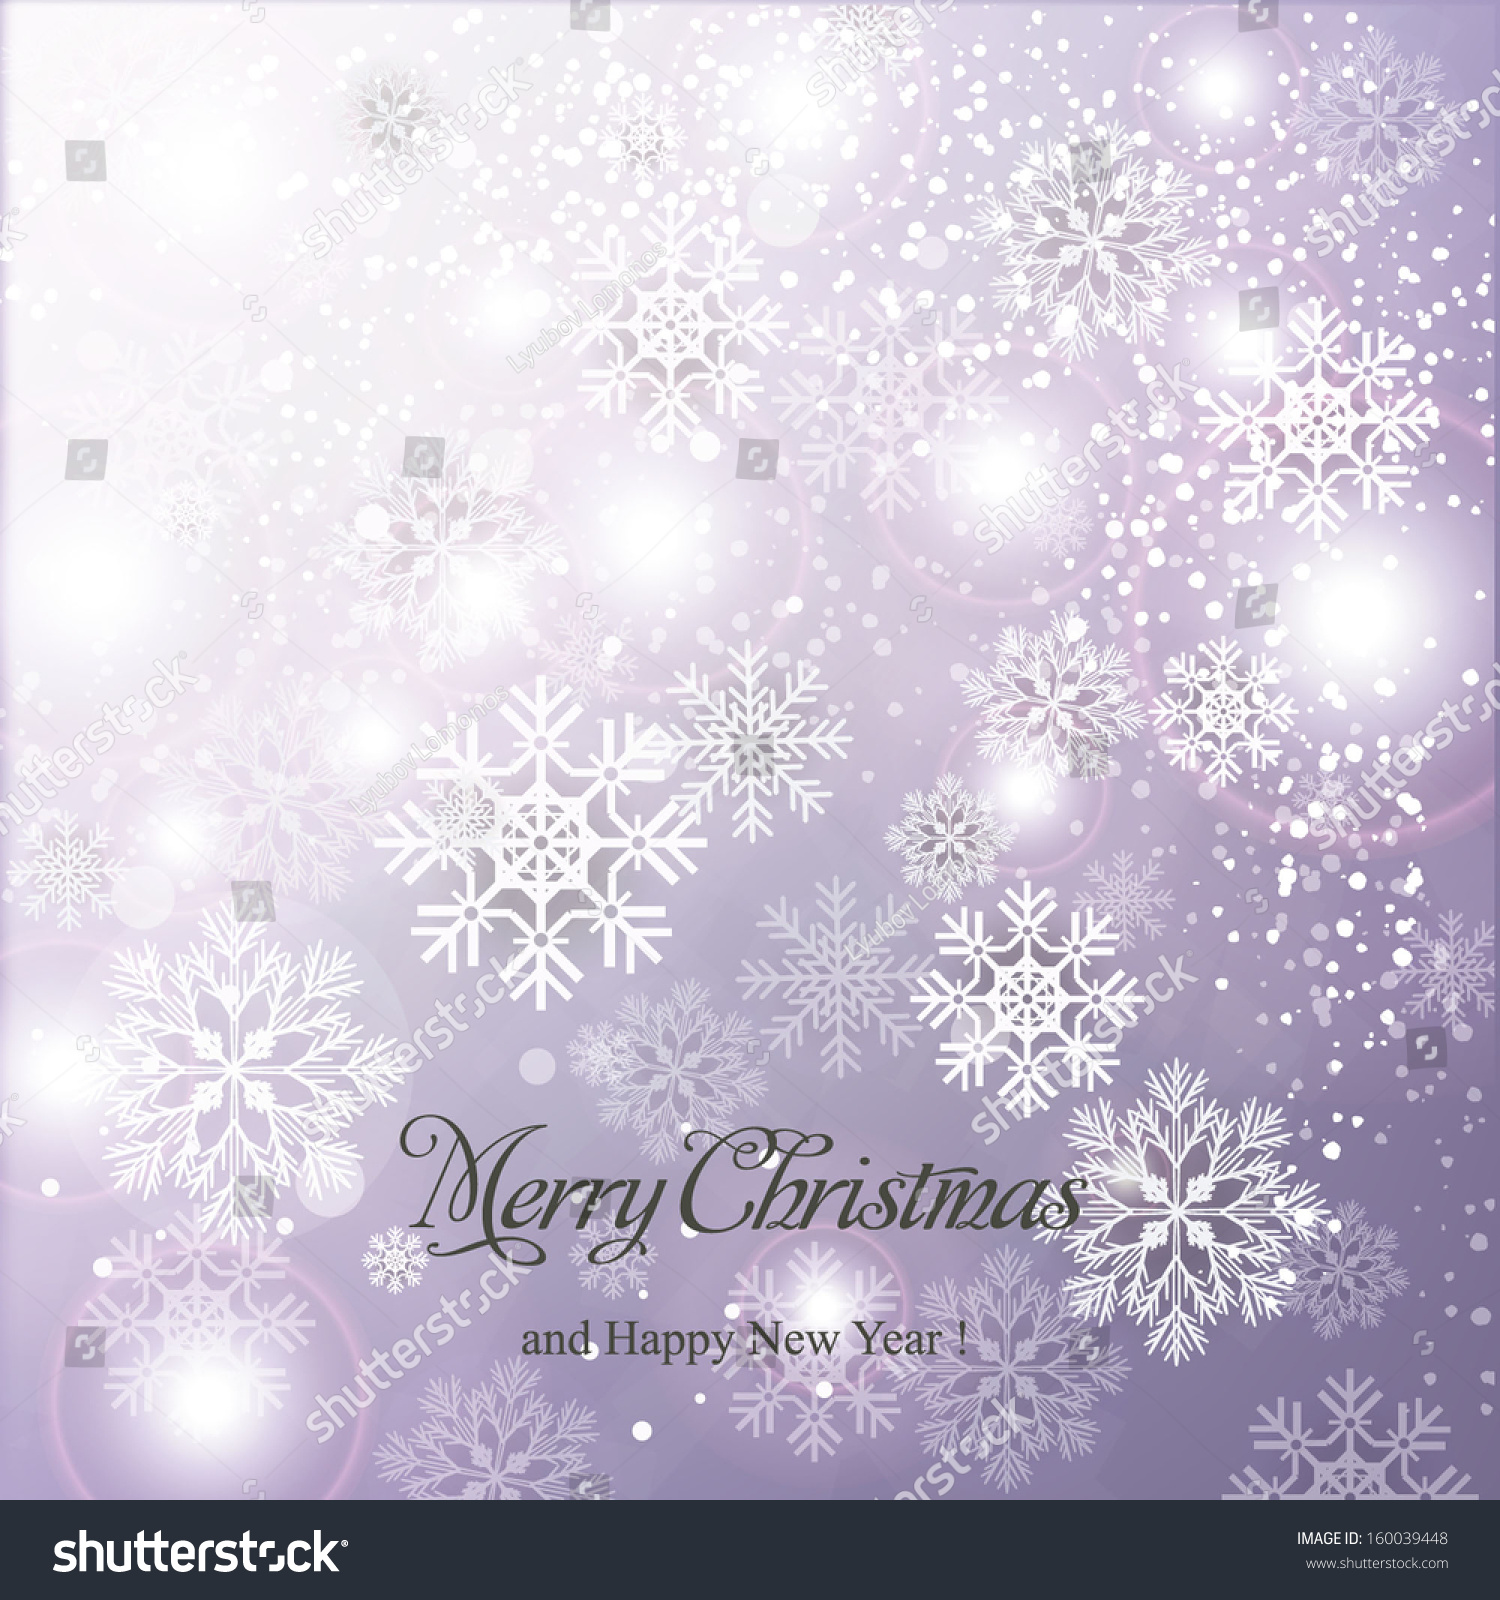 merry christmas and happy new year card ez canvas